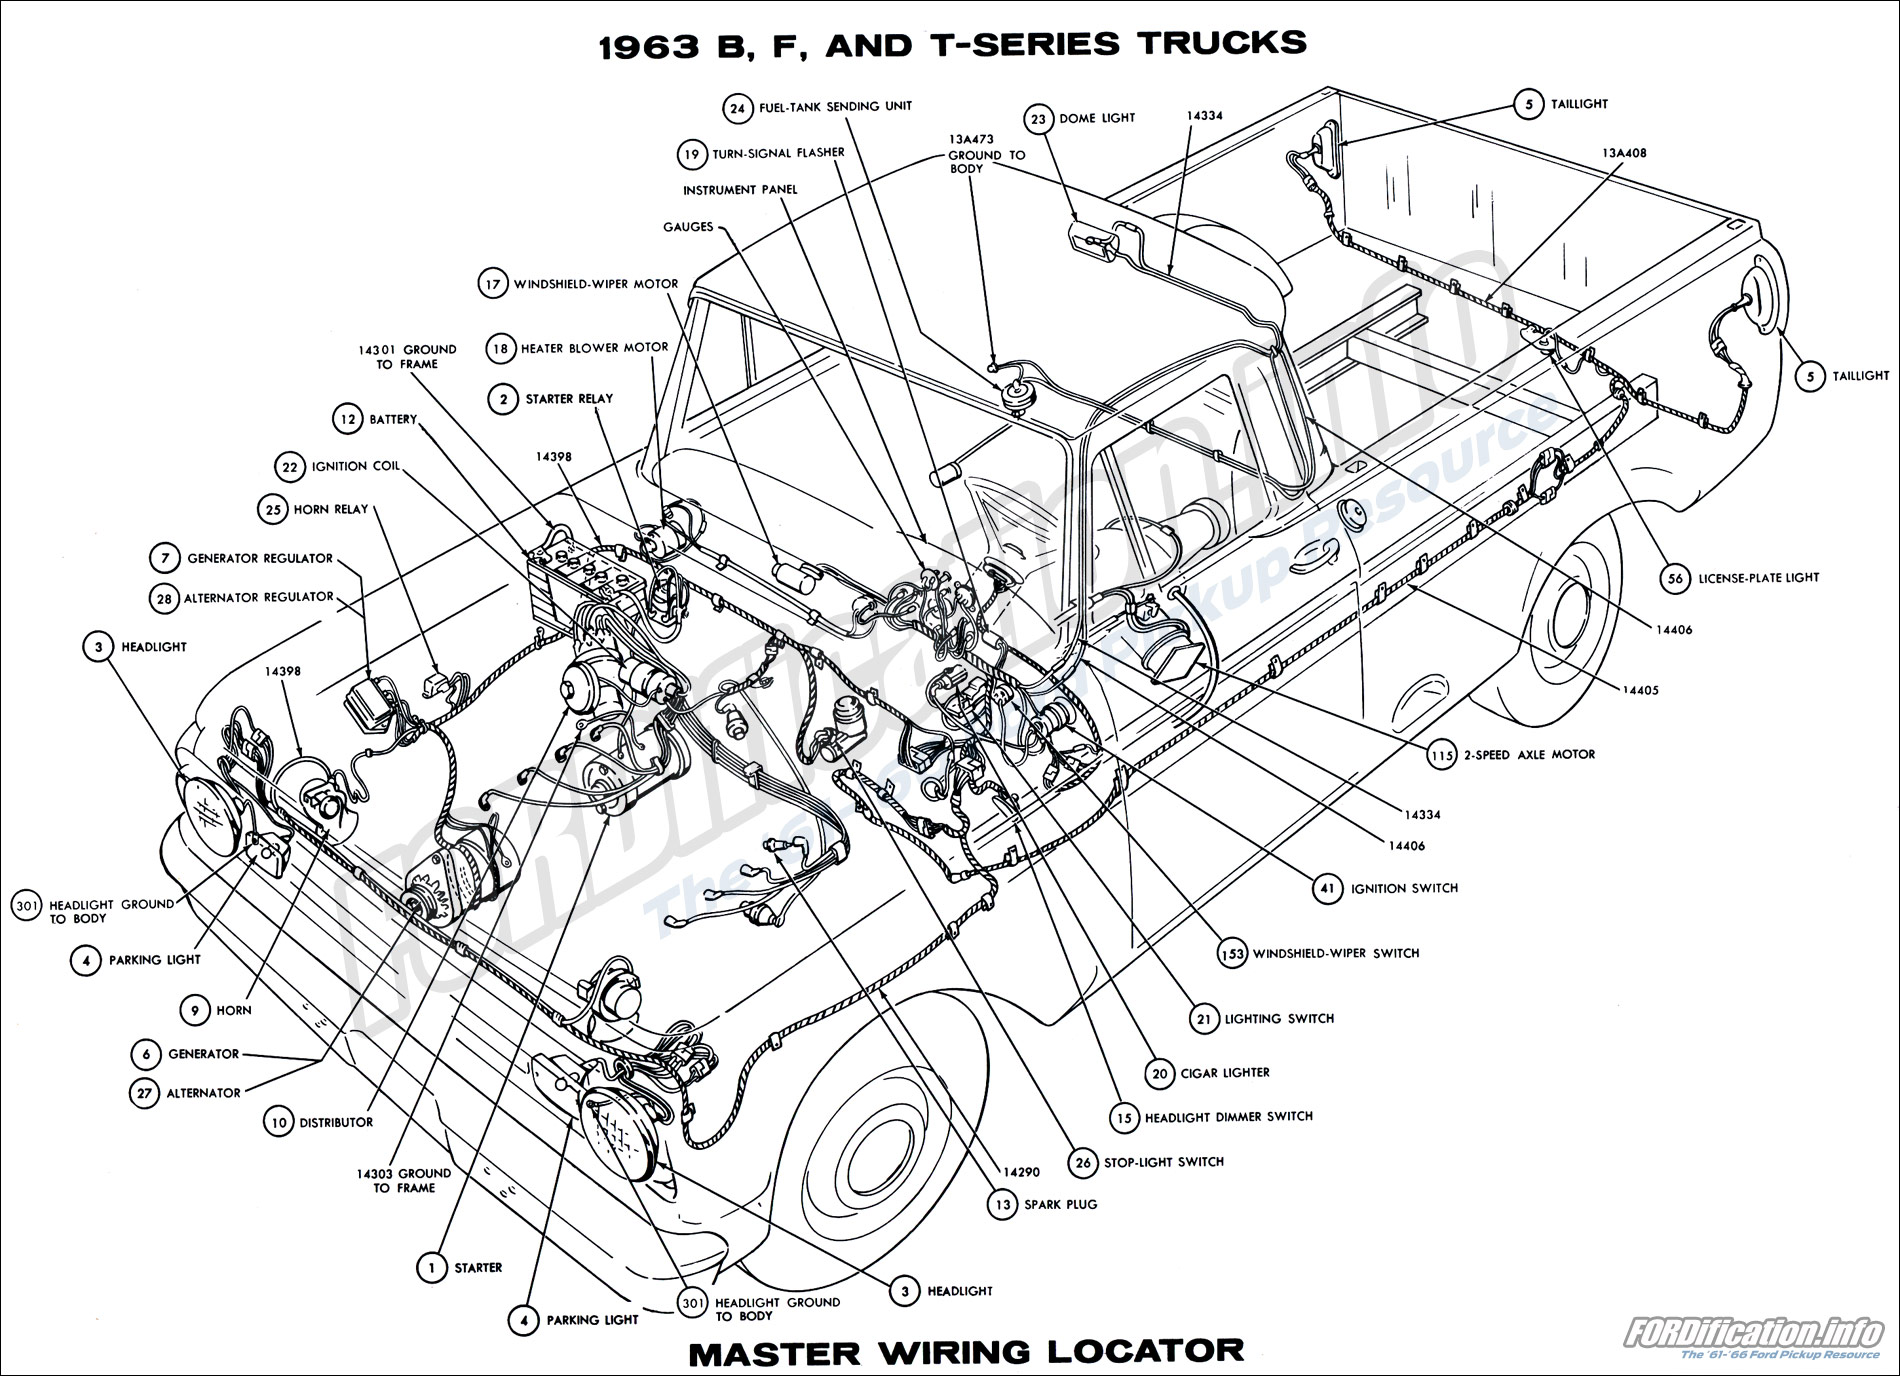 1963 B, F, and T-series Trucks Master Wiring Locator